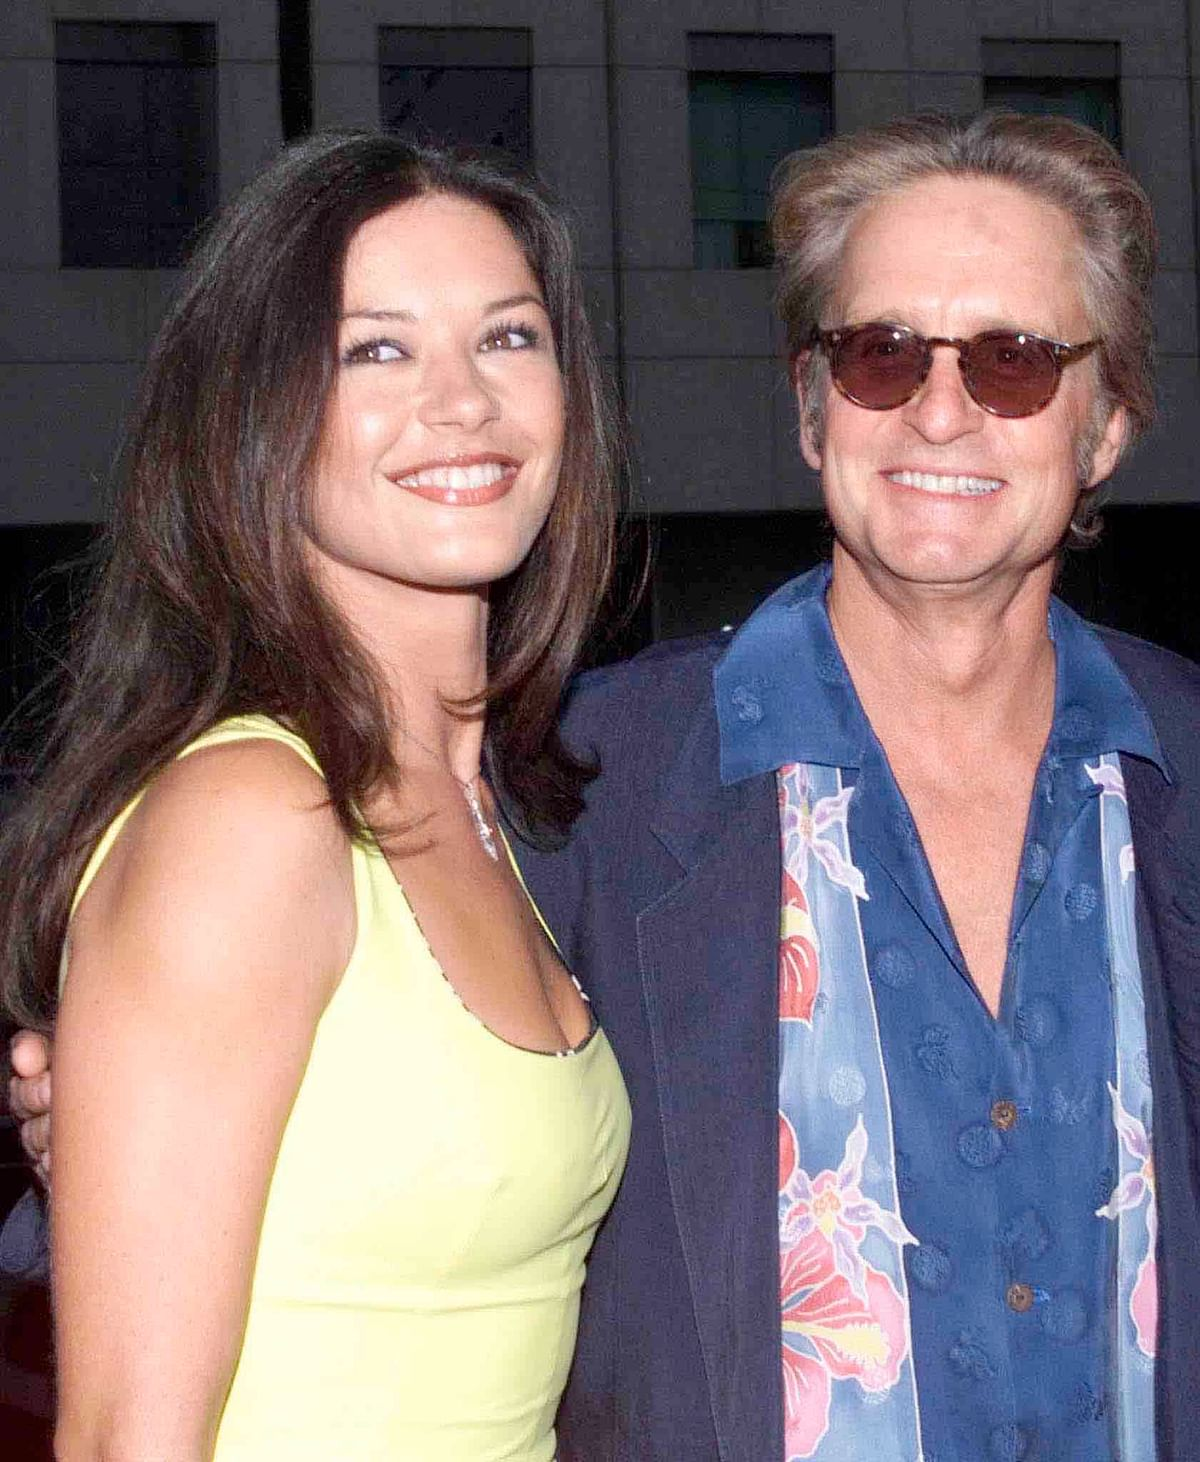 Catherine Zeta-Jones and Michael Douglas in 2000 (Photo: Reuters)